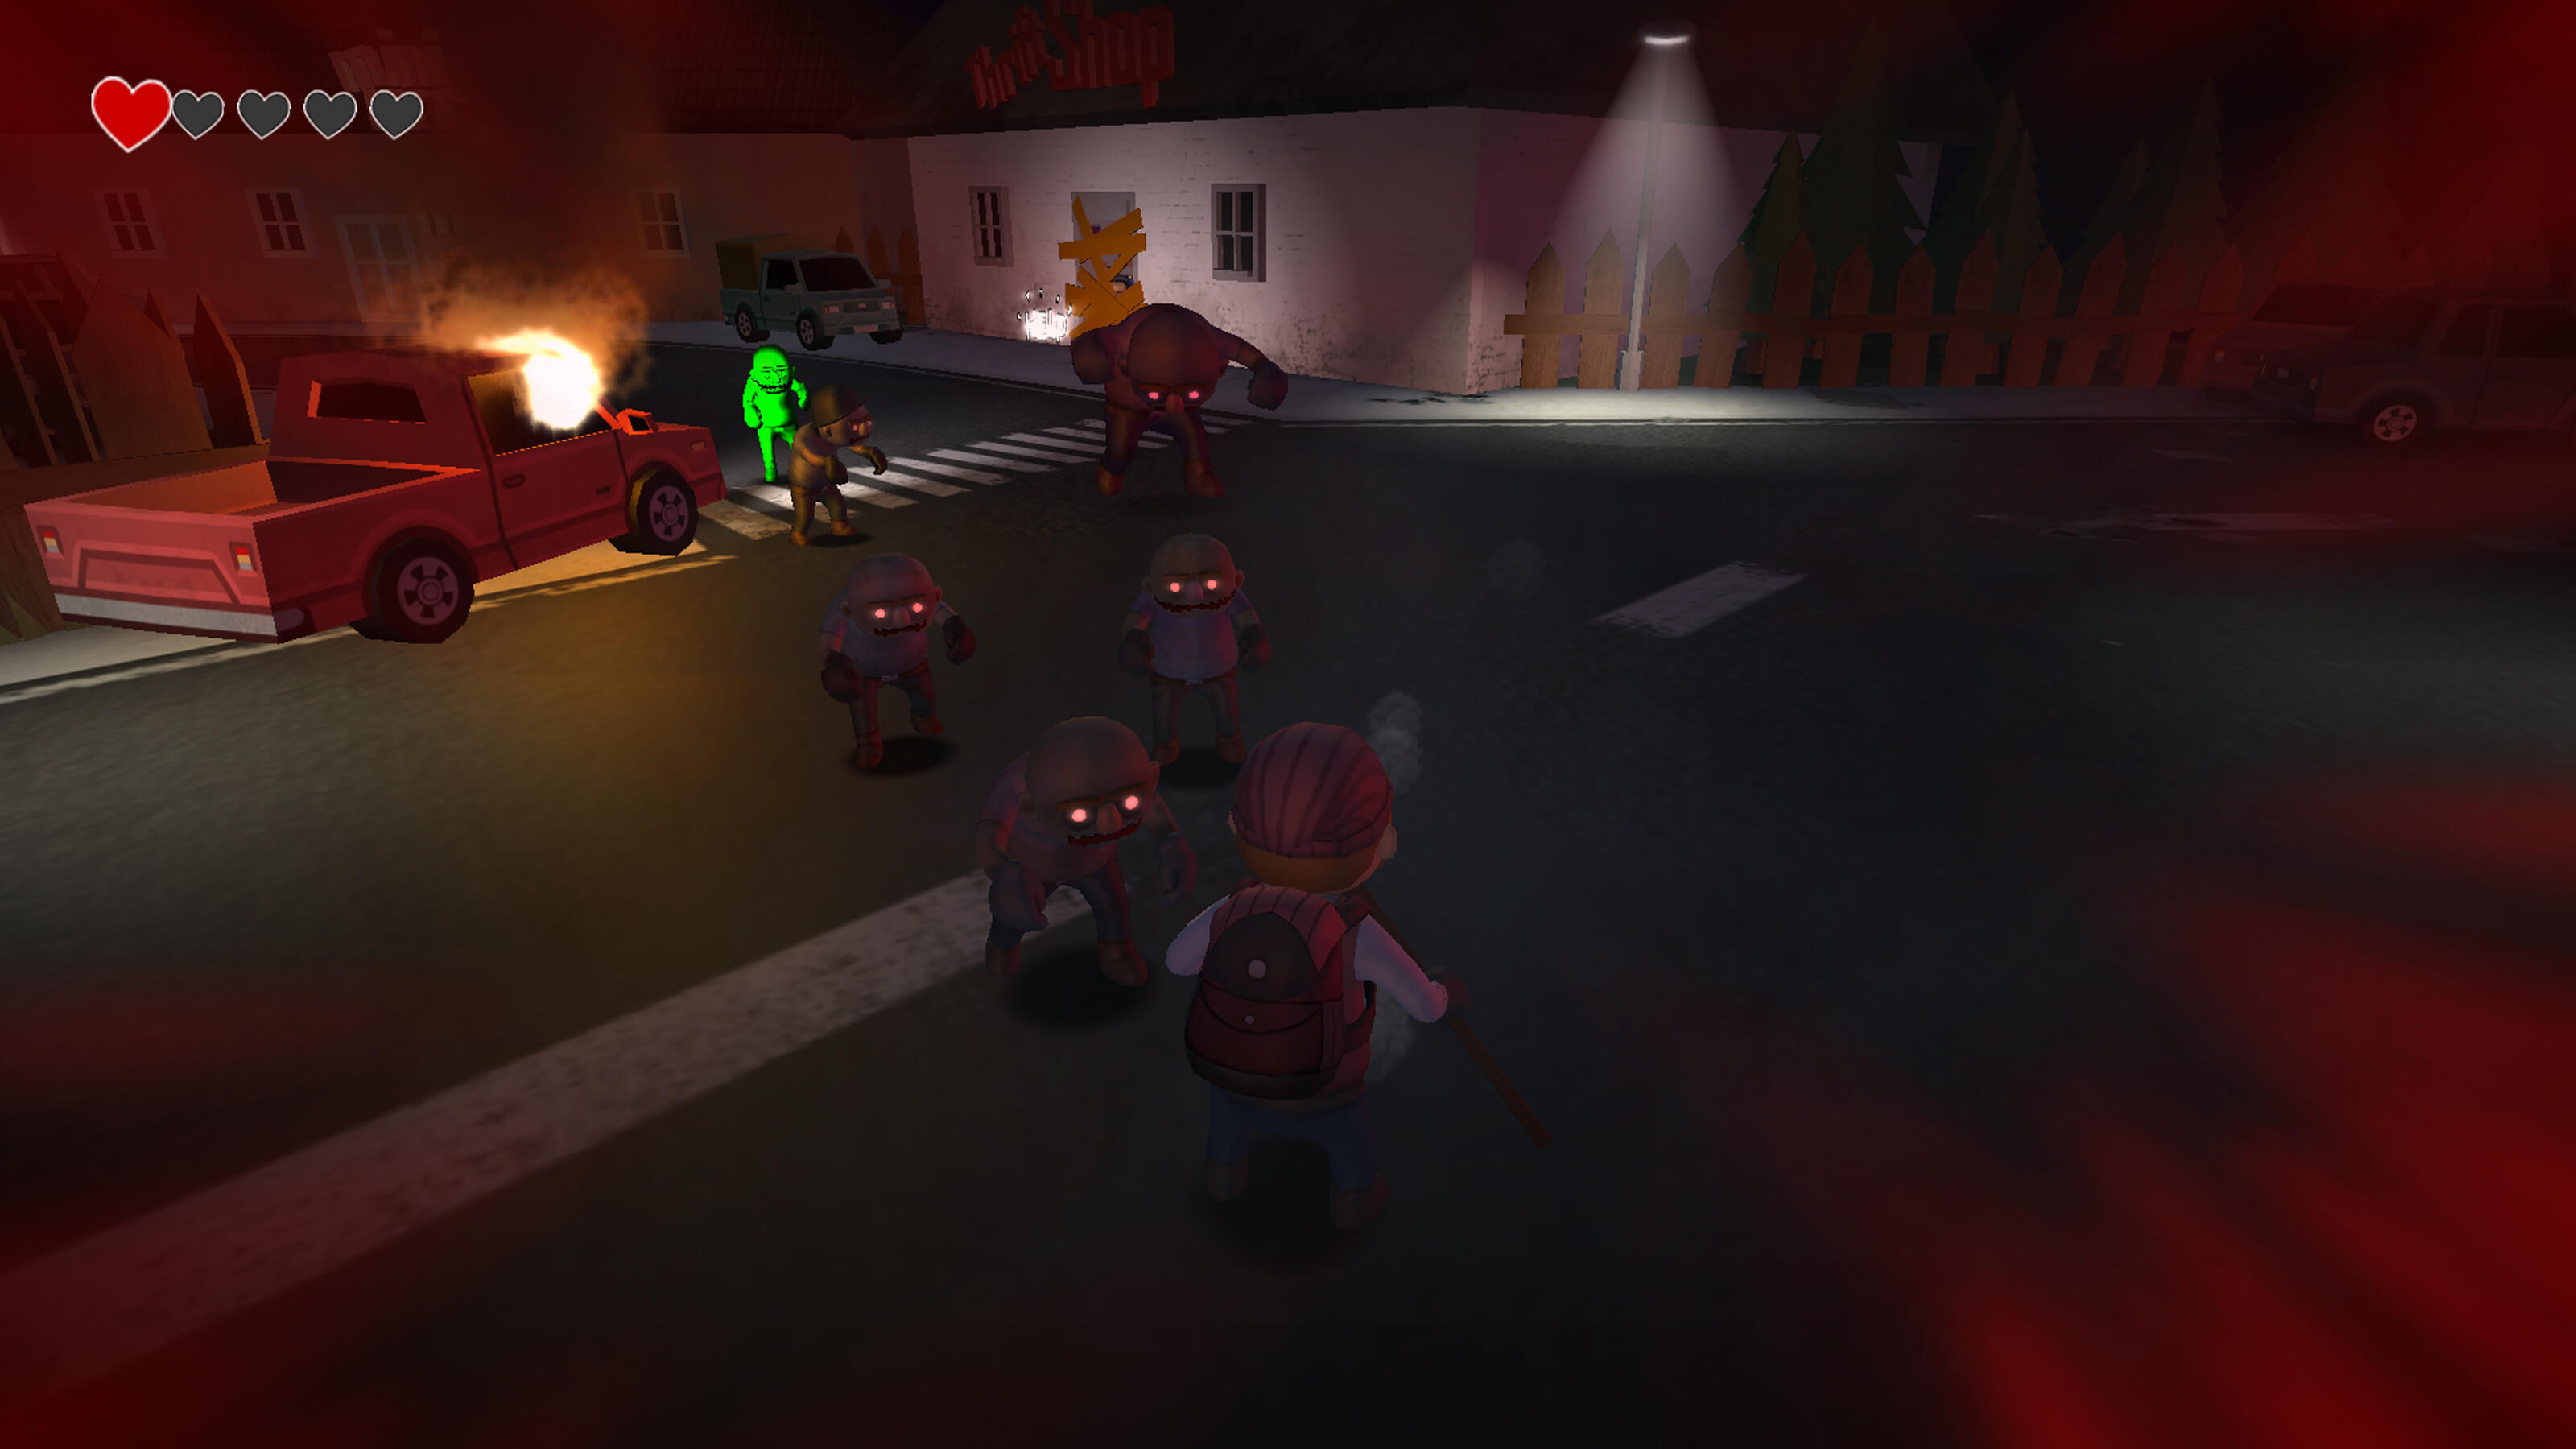 Zombies shamble toward the player's character at an intersection. A pickup truck is on fire on the curb.